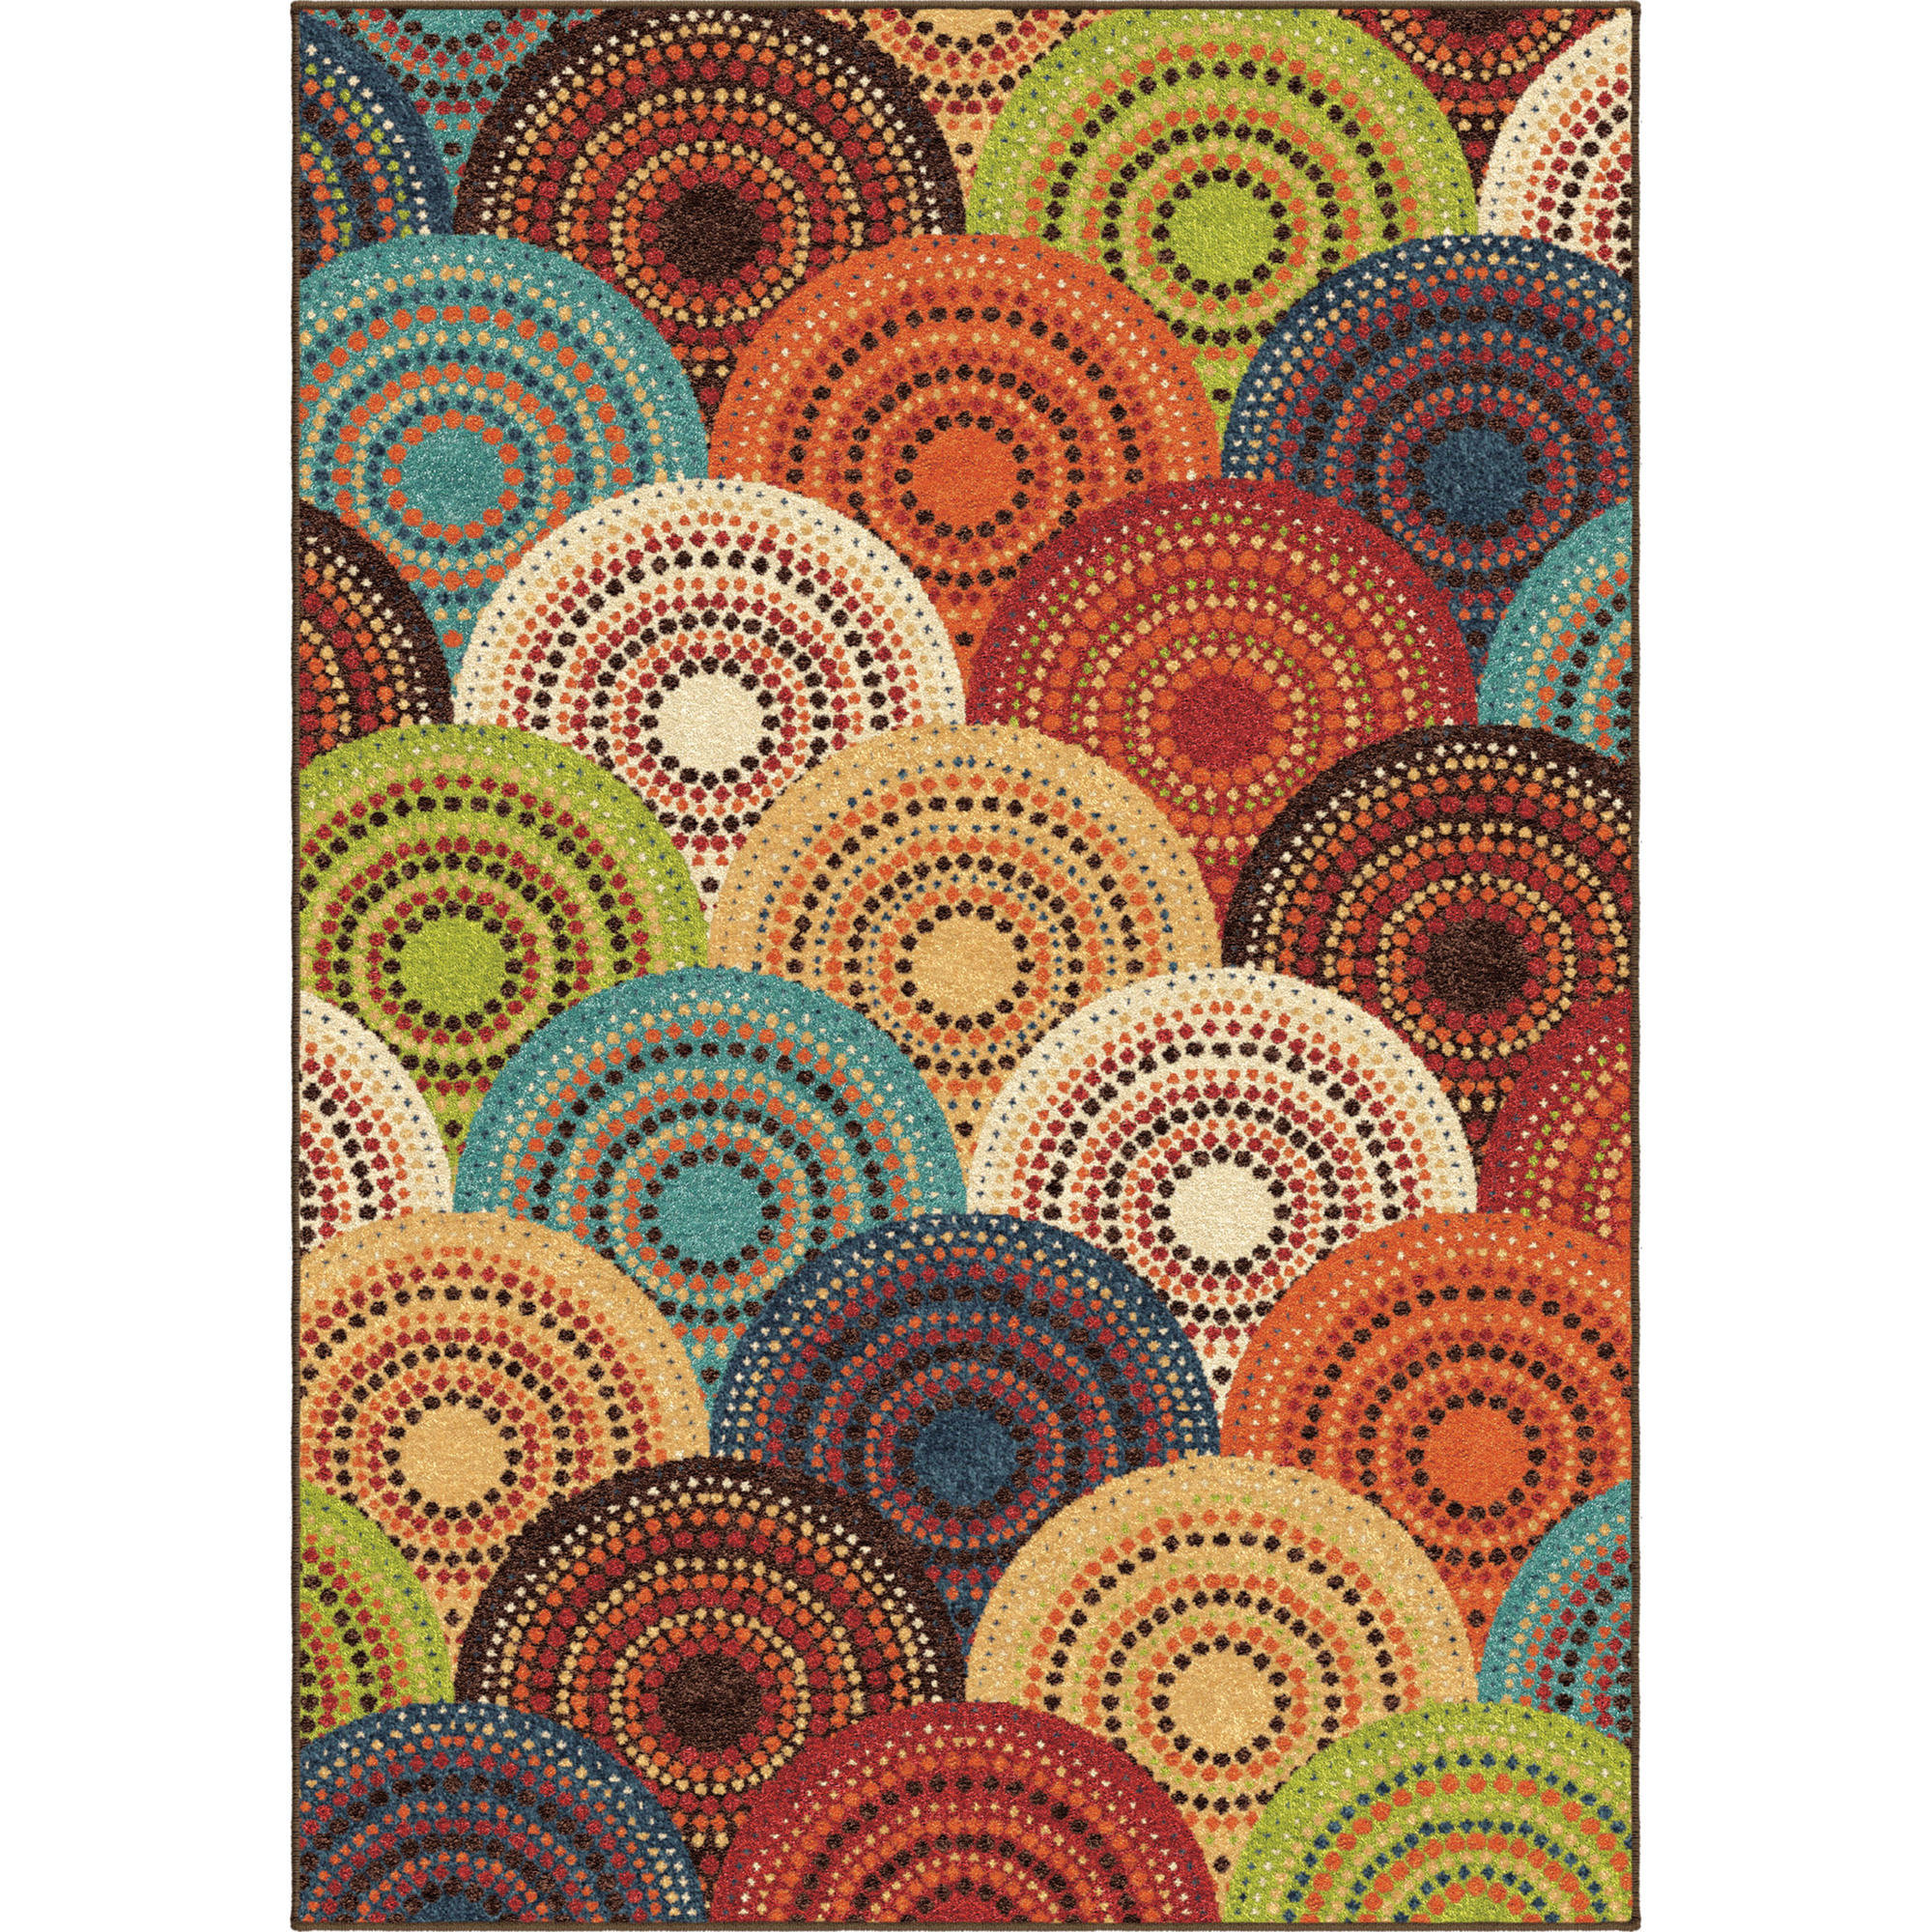 home multi color bright circles area rug 5 39 x7 39 olefin living room carpet ebay. Black Bedroom Furniture Sets. Home Design Ideas